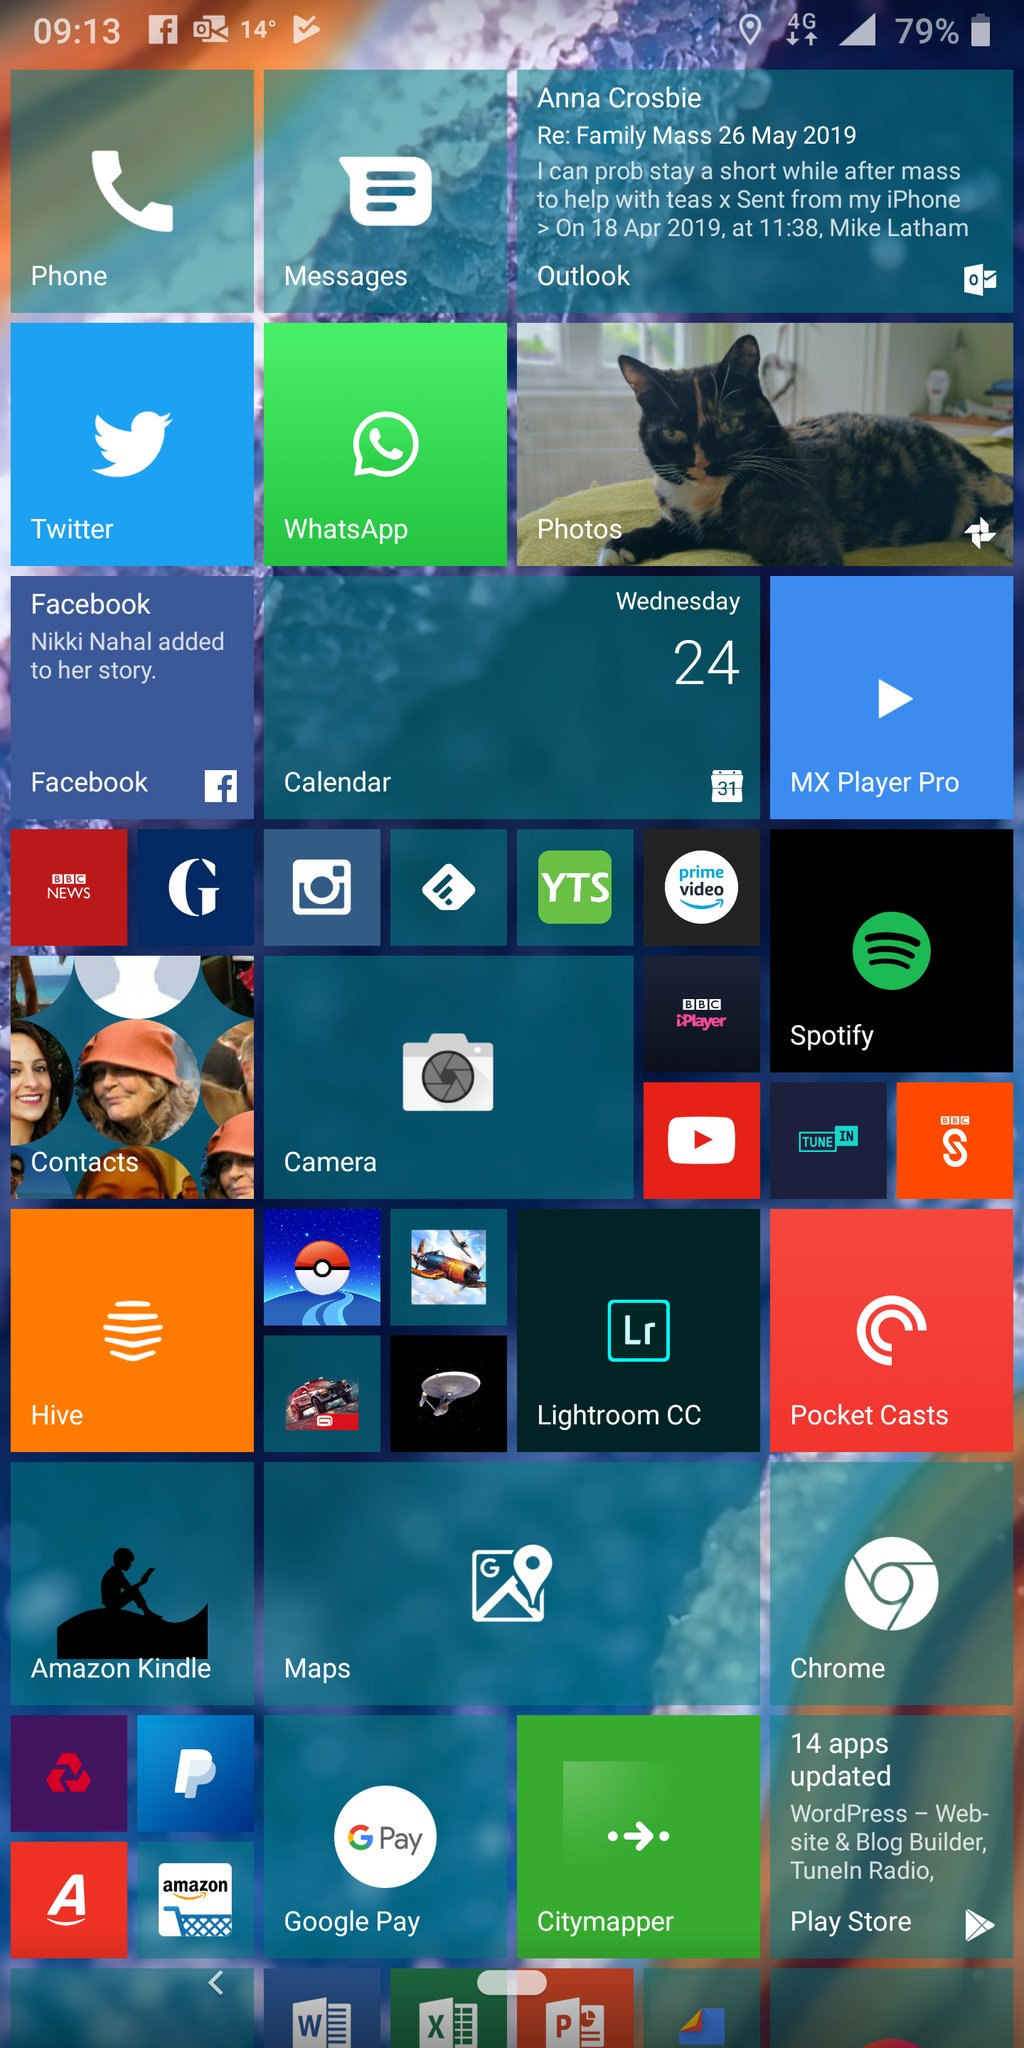 Nokia Lumia Launcher : nokia, lumia, launcher, Launcher10, Tiles, Android